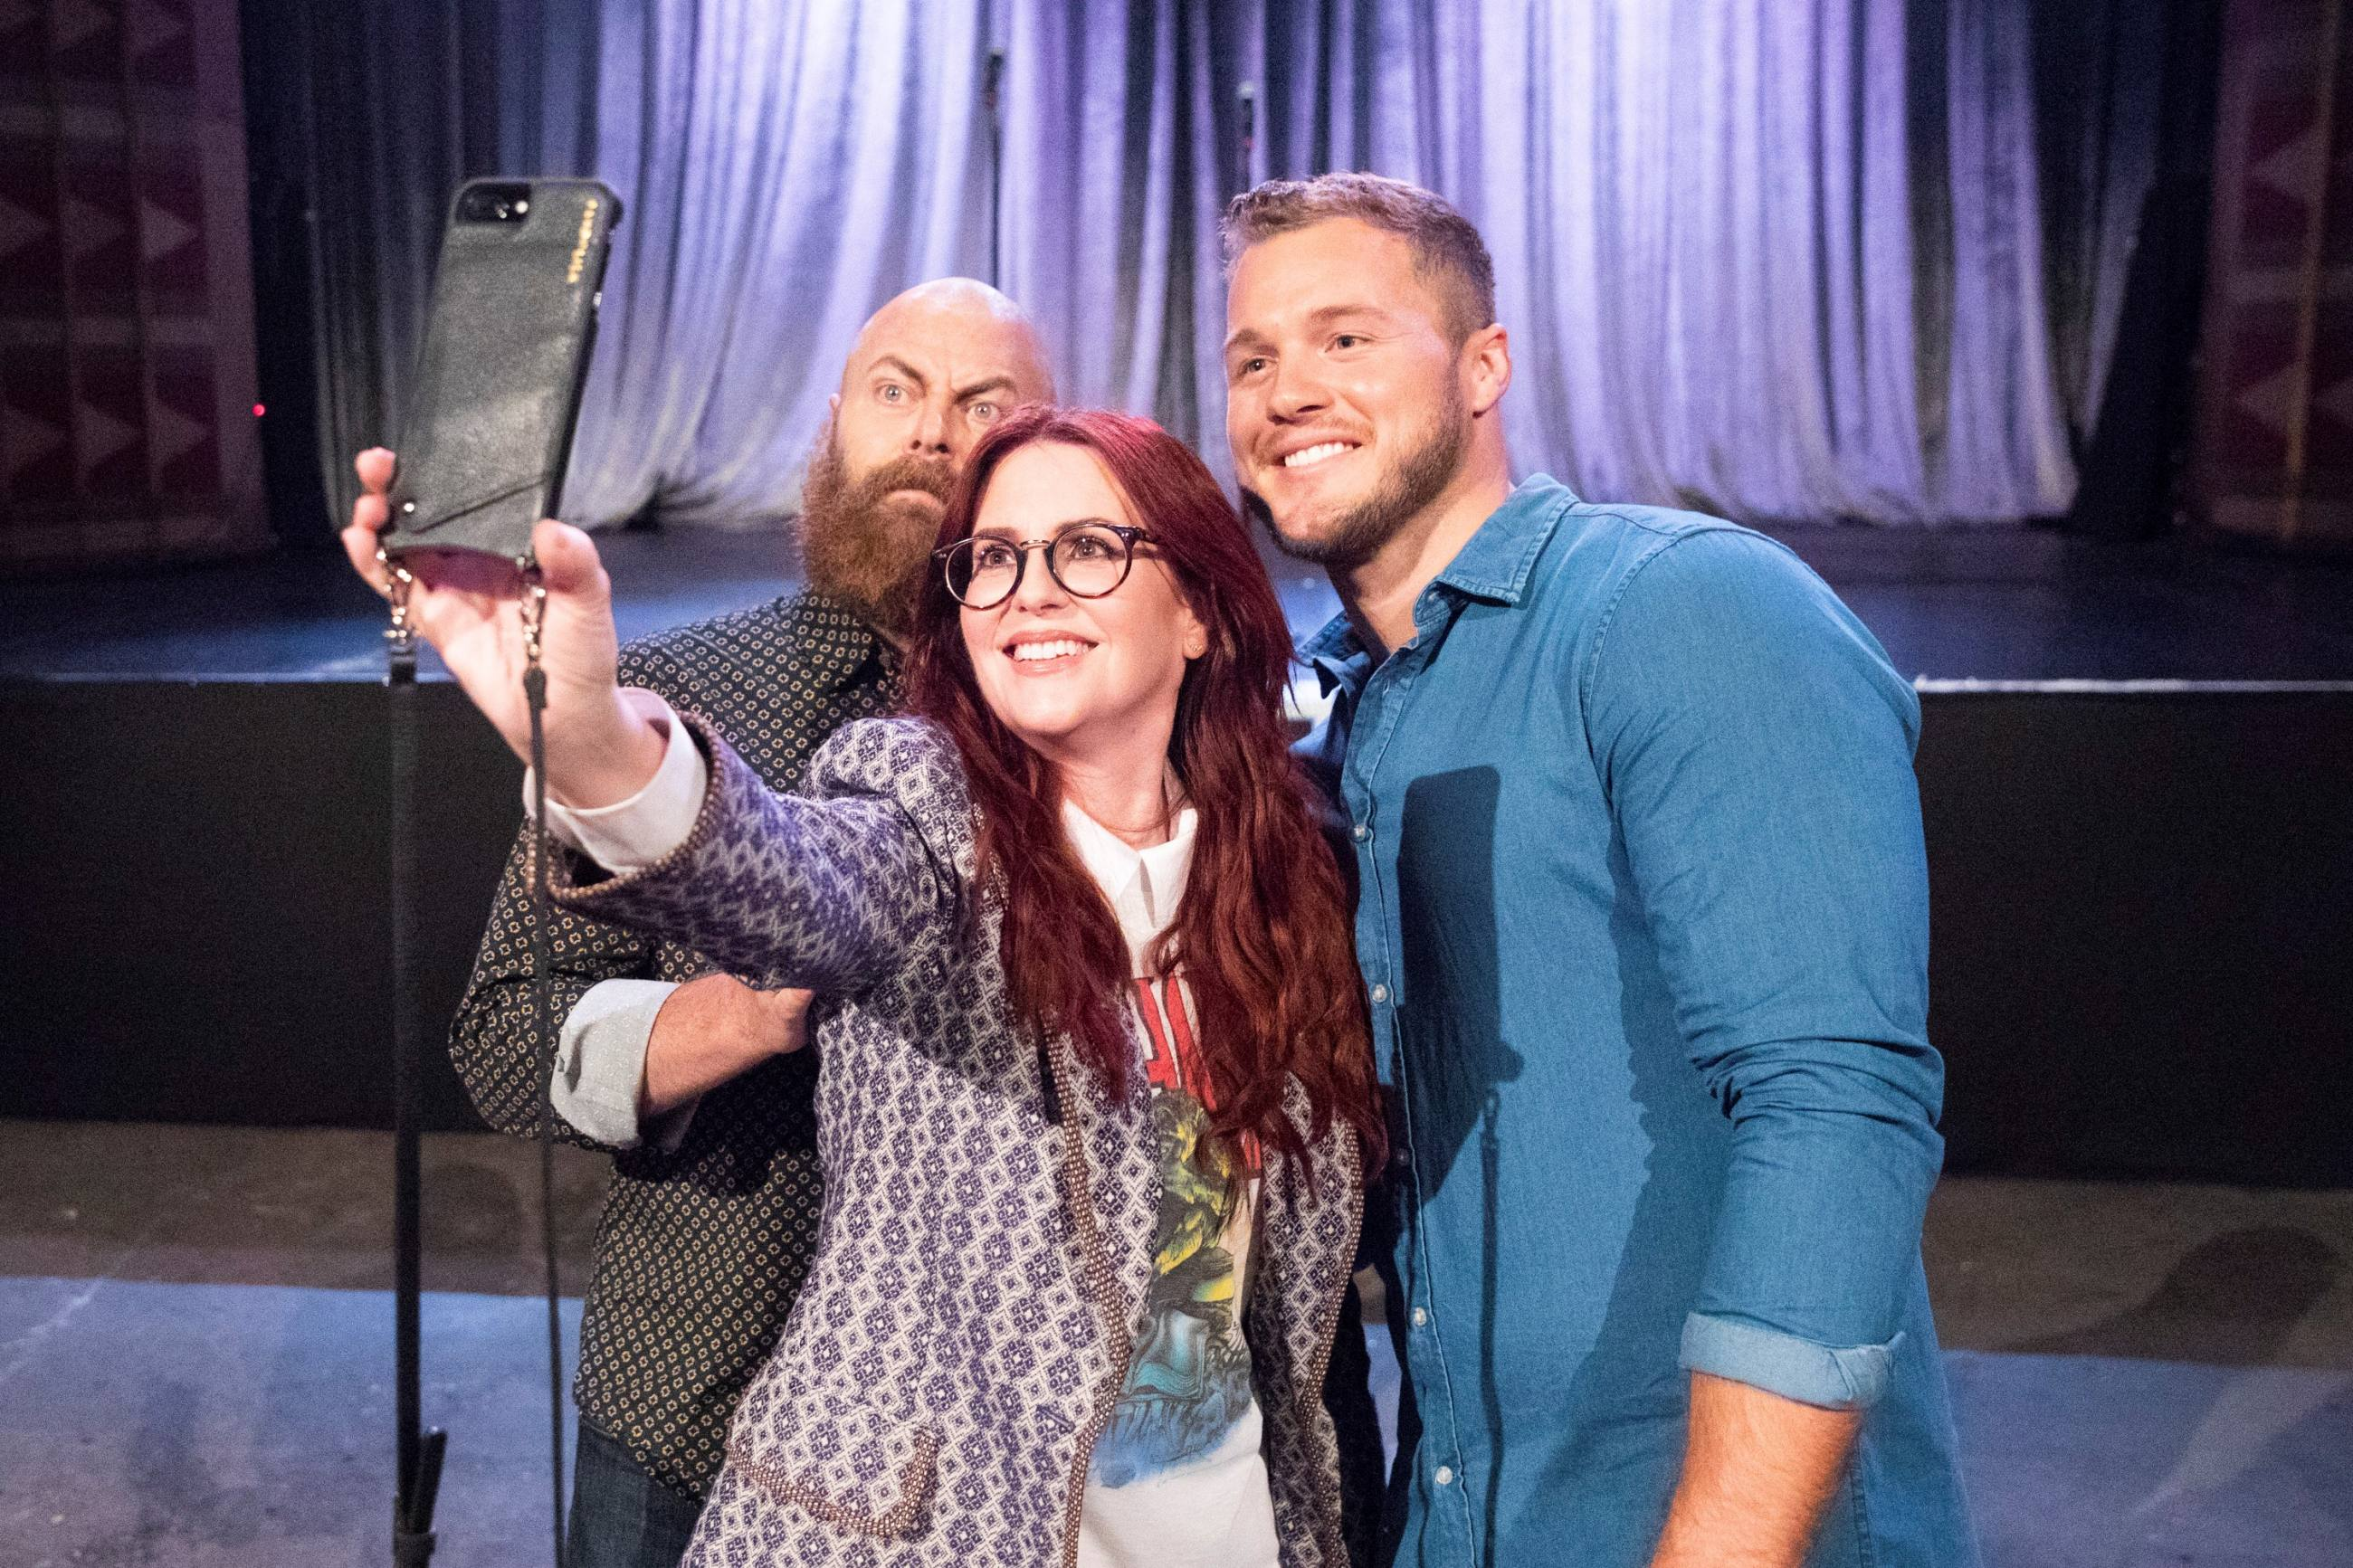 """Nick Offerman, Megan Mullally, and Colton Underwood at The Regent from """"The Bachelor"""" Season 23"""